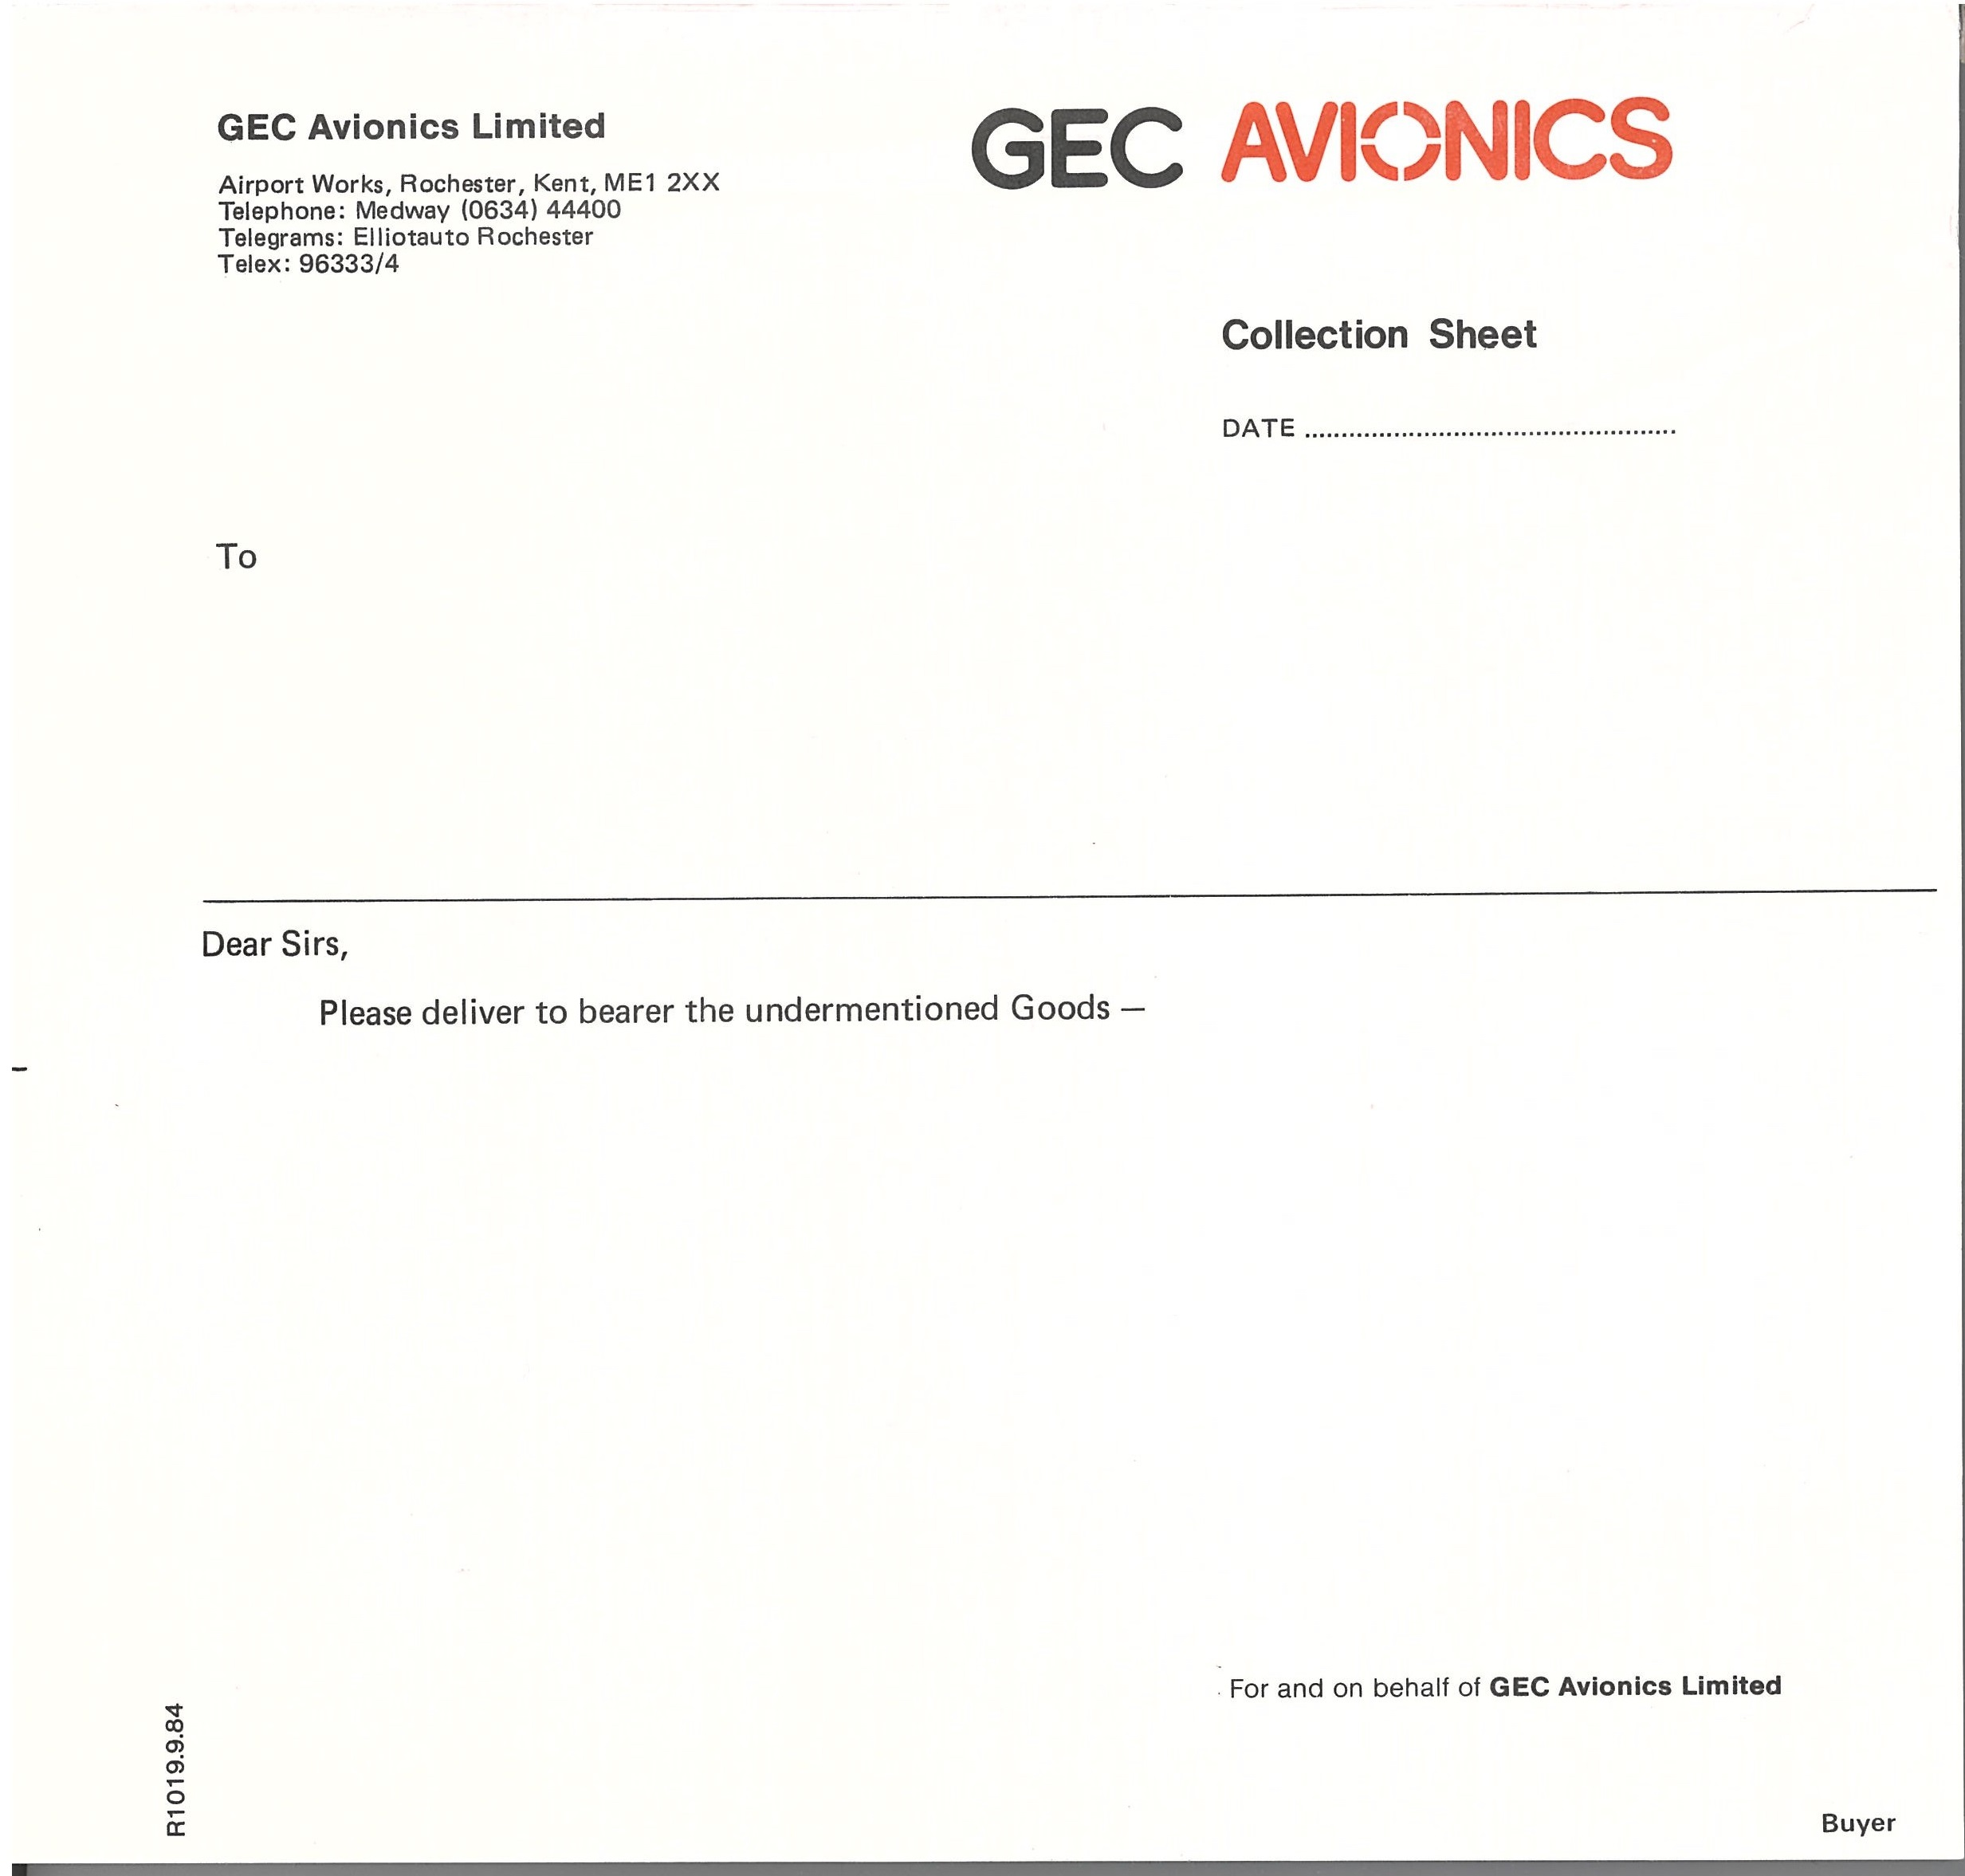 GEC Avionics Collection Sheet